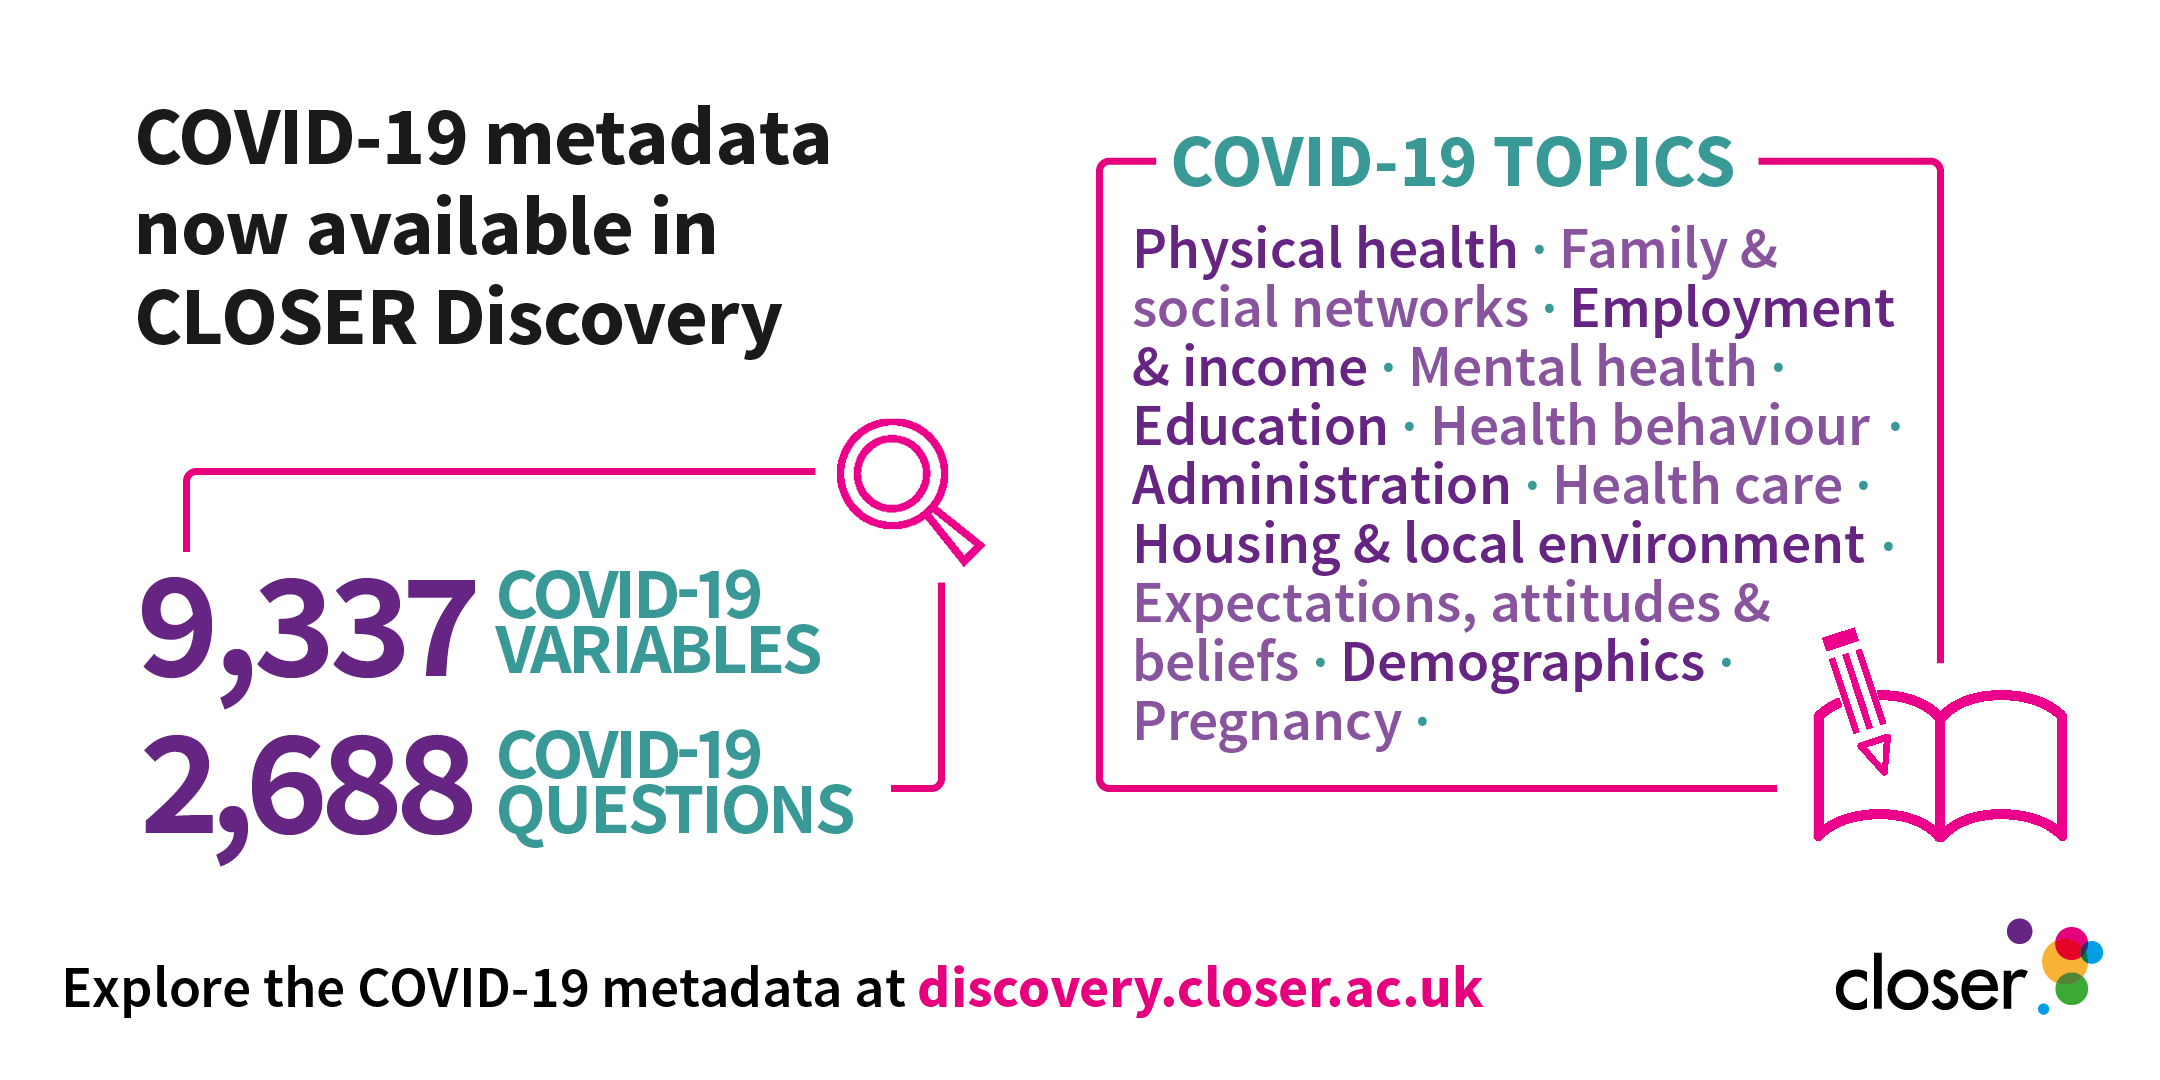 CLOSER infographic showing that over 9000 covid-19 variables and over 2,600 covid-19 questions are available in CLOSER Discovery